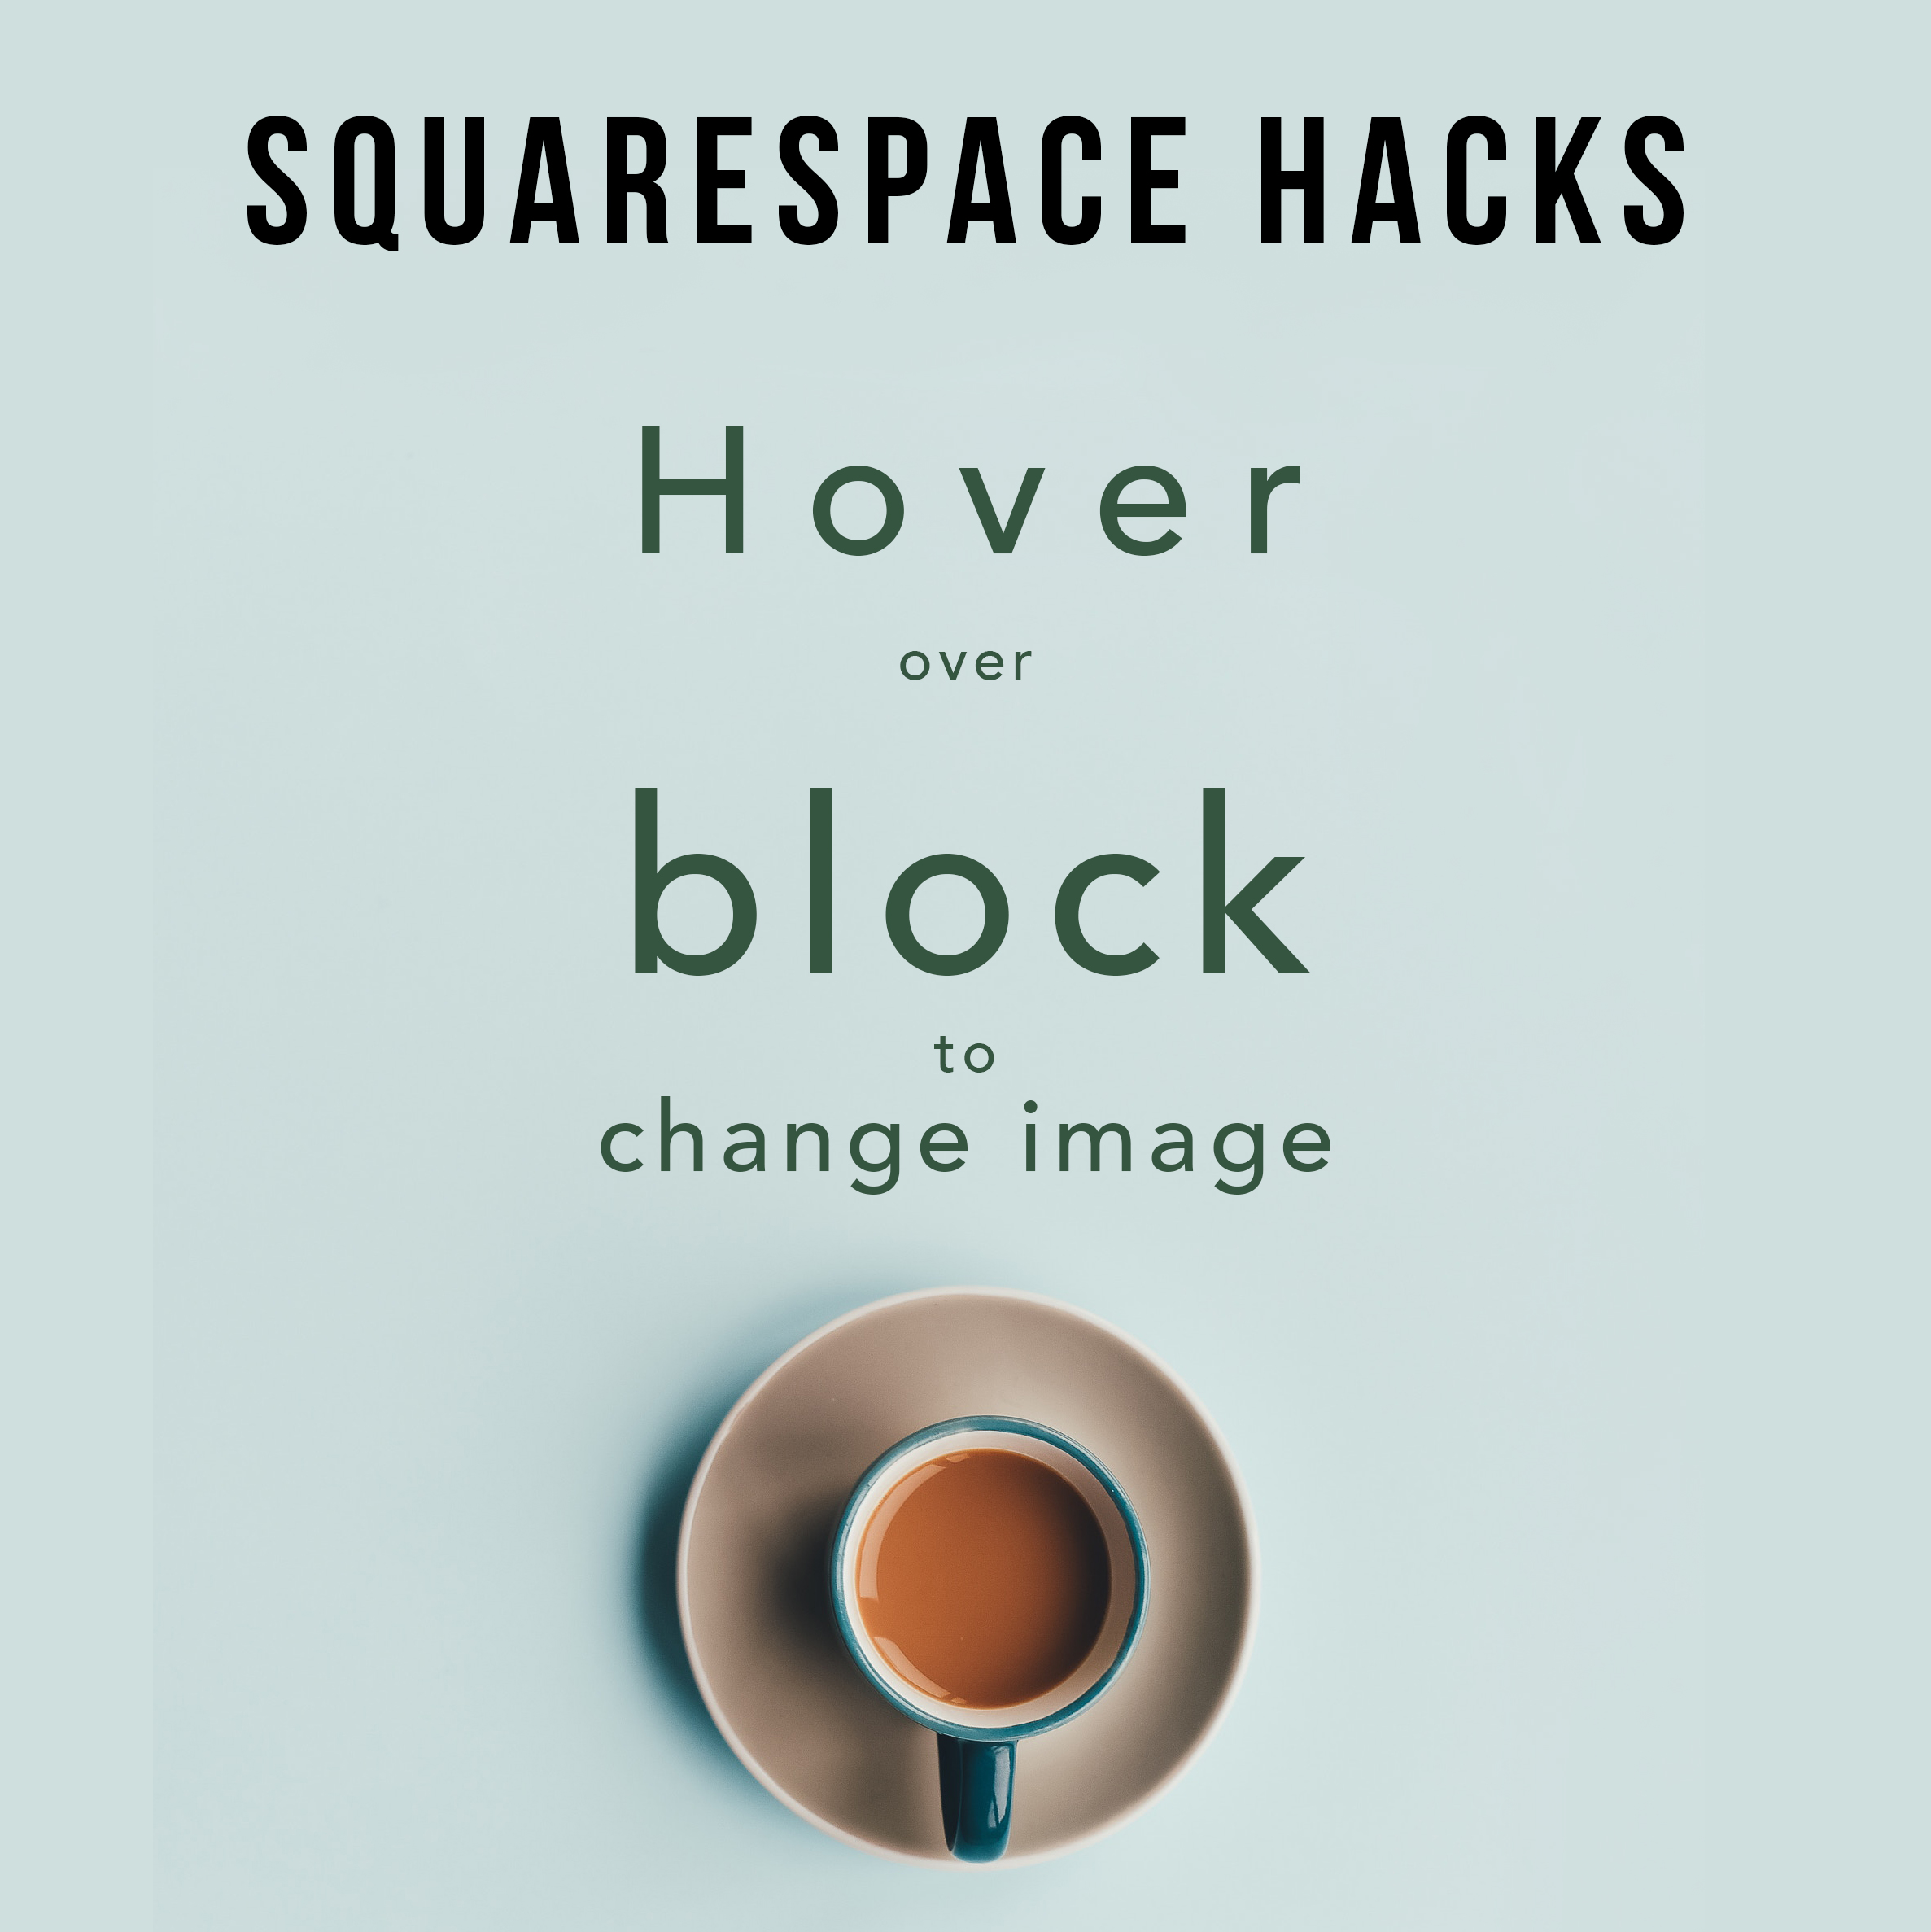 square-space-tips-hover-over-image.jpg